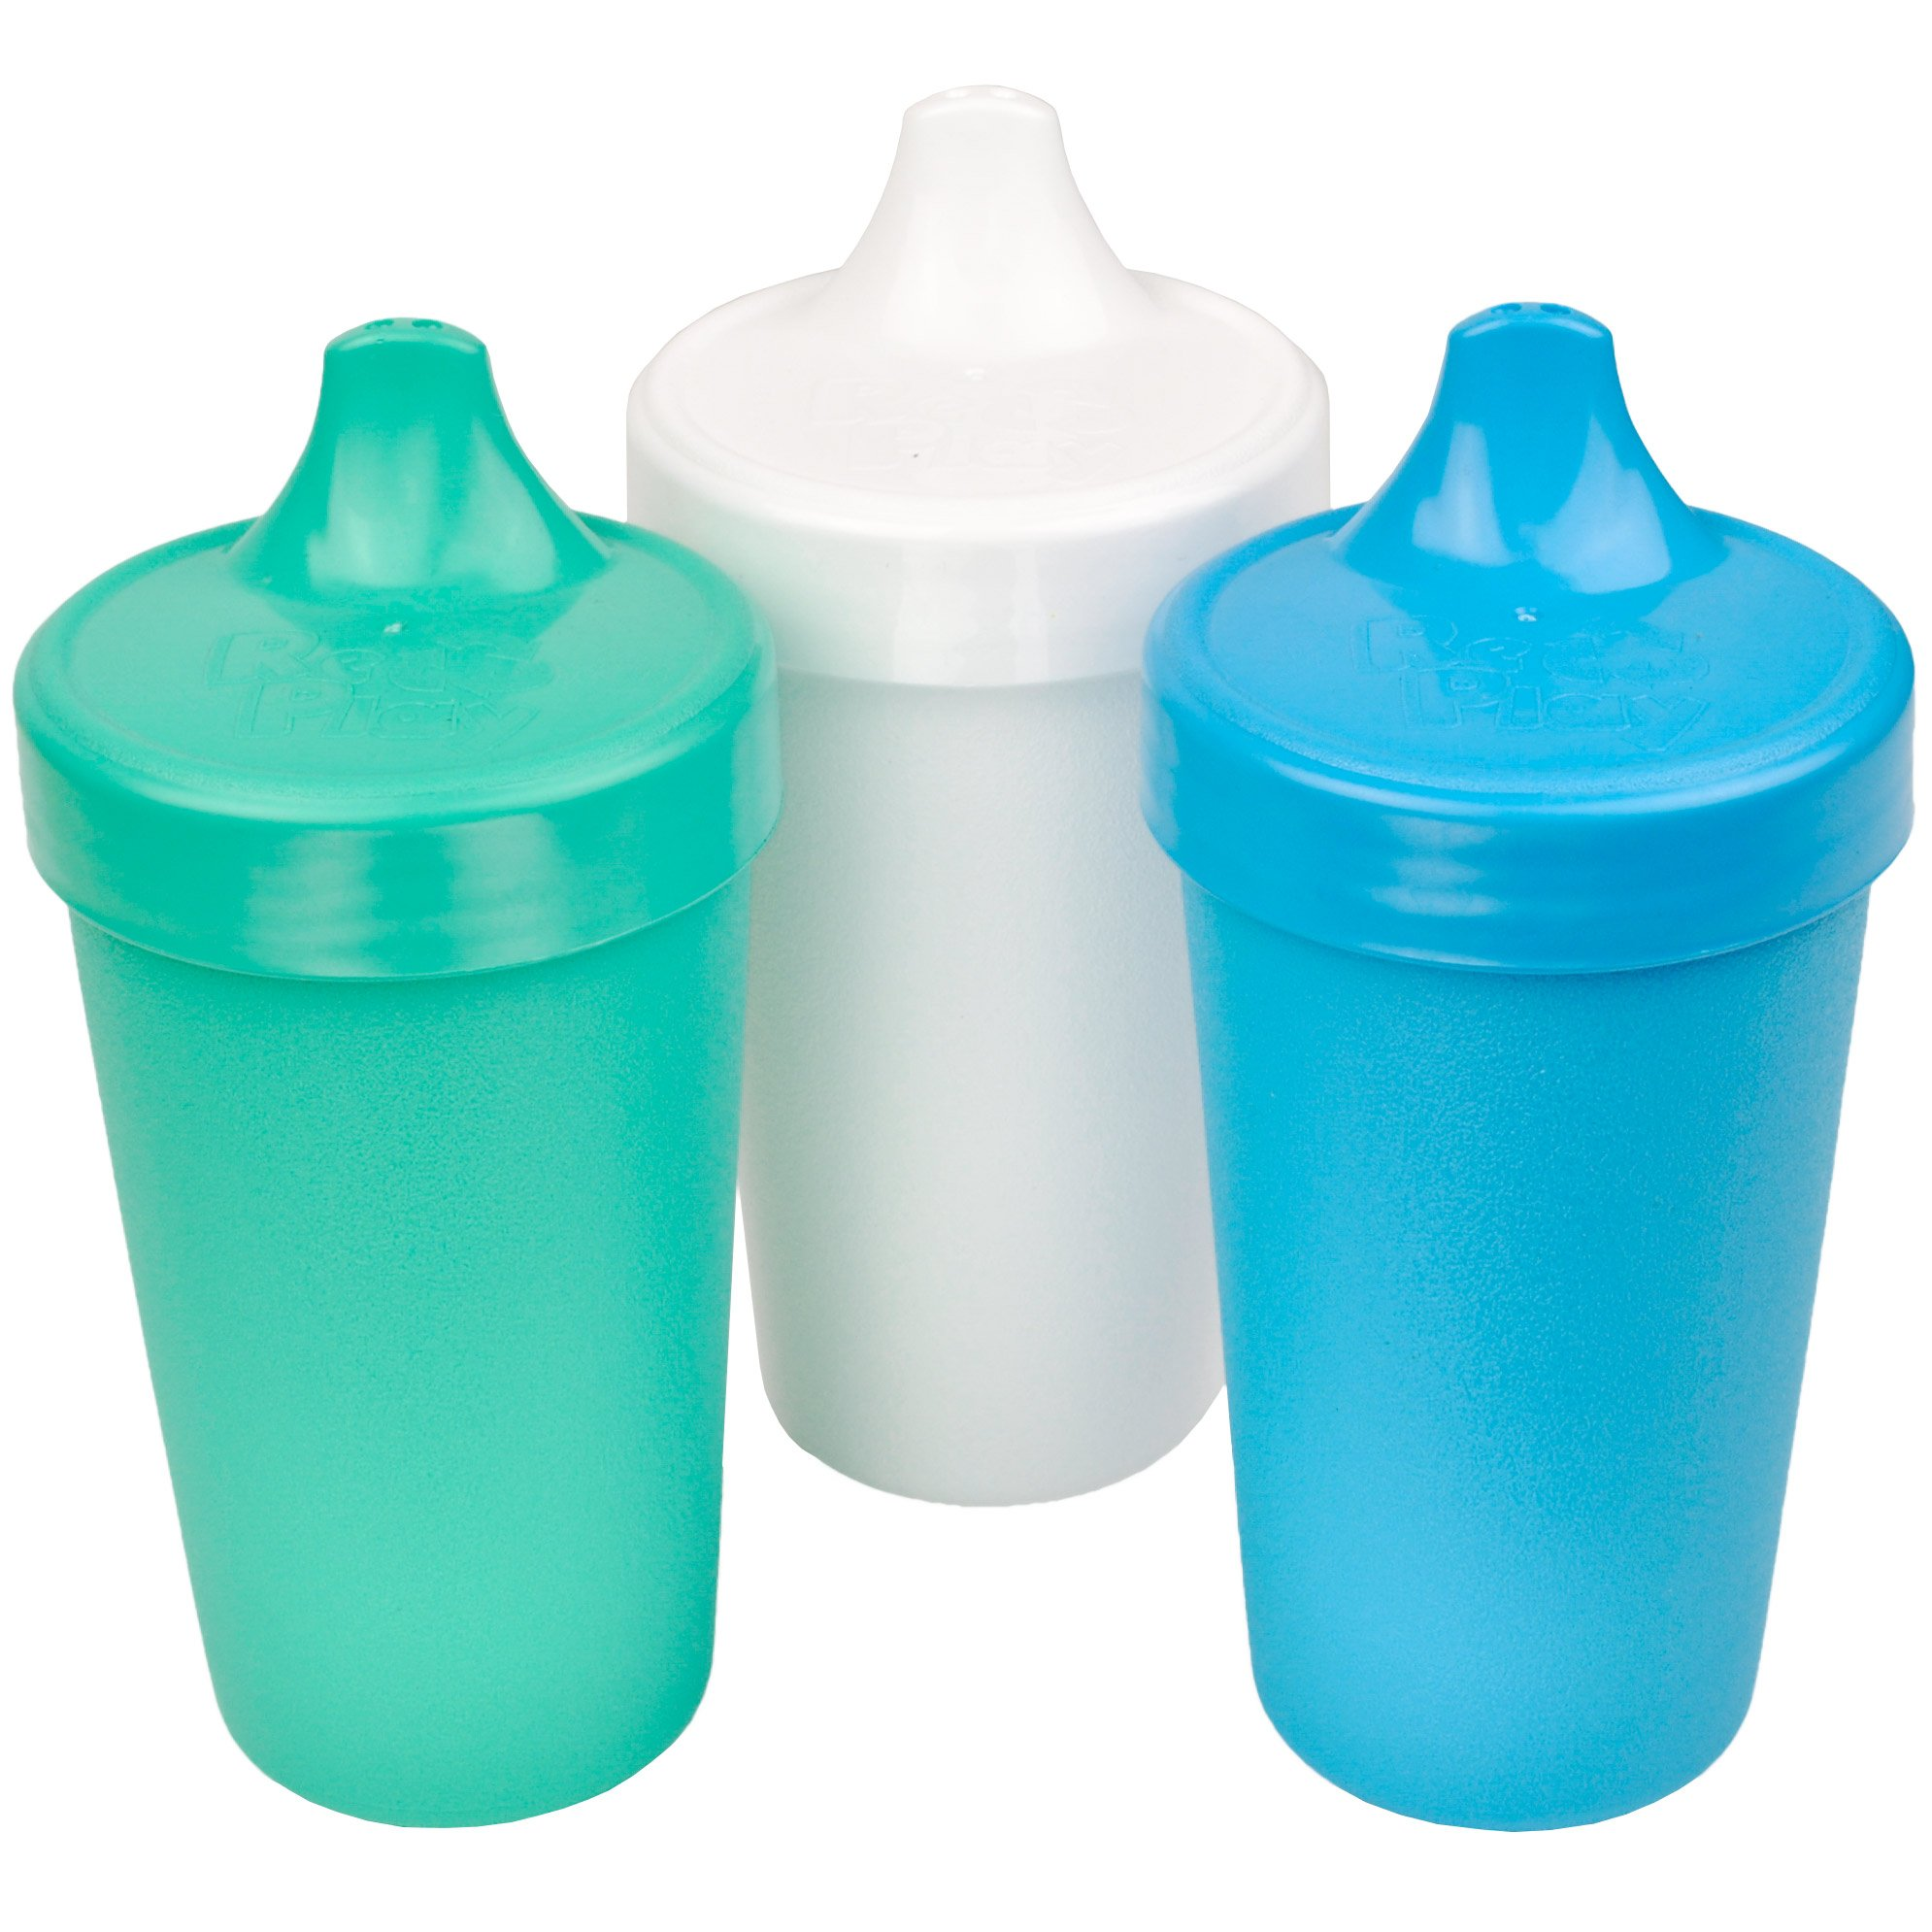 Re-Play Made in USA 3pk No Spill Sippy Cups for Baby, Toddler, and Child Feeding in Aqua, White and Sky Blue | Made from Eco Friendly Recycled Milk Jugs - Virtually Indestructible (Cool Breeze)